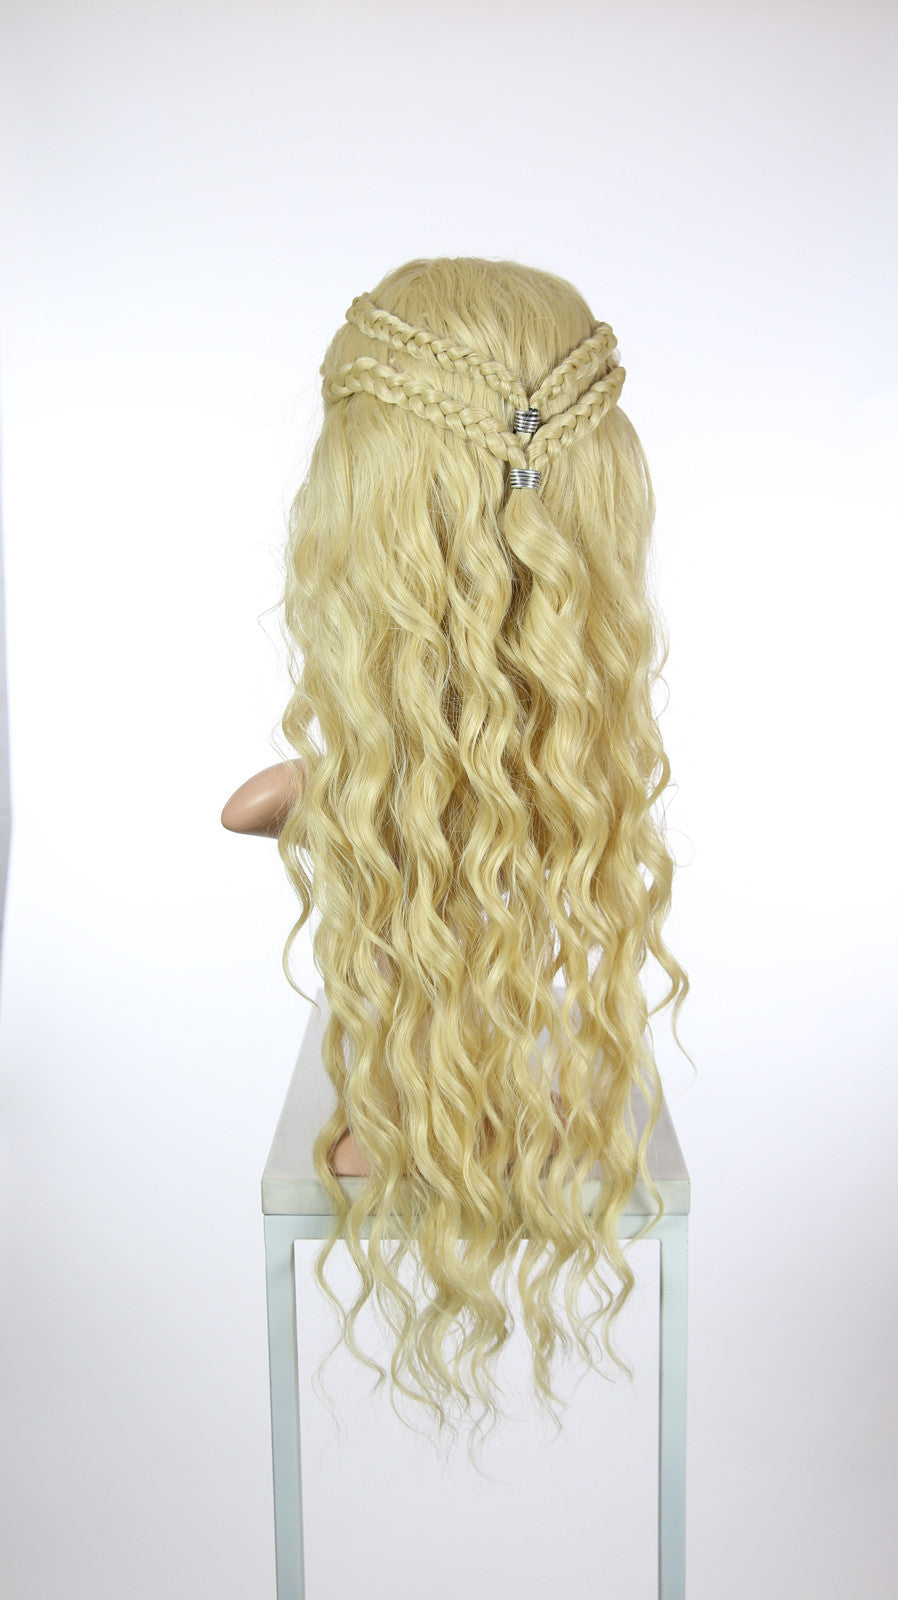 Blonde Custom Braided Long Curly Lace Front Wig - Four Dutch Braids - Duchess Series LDNIX44